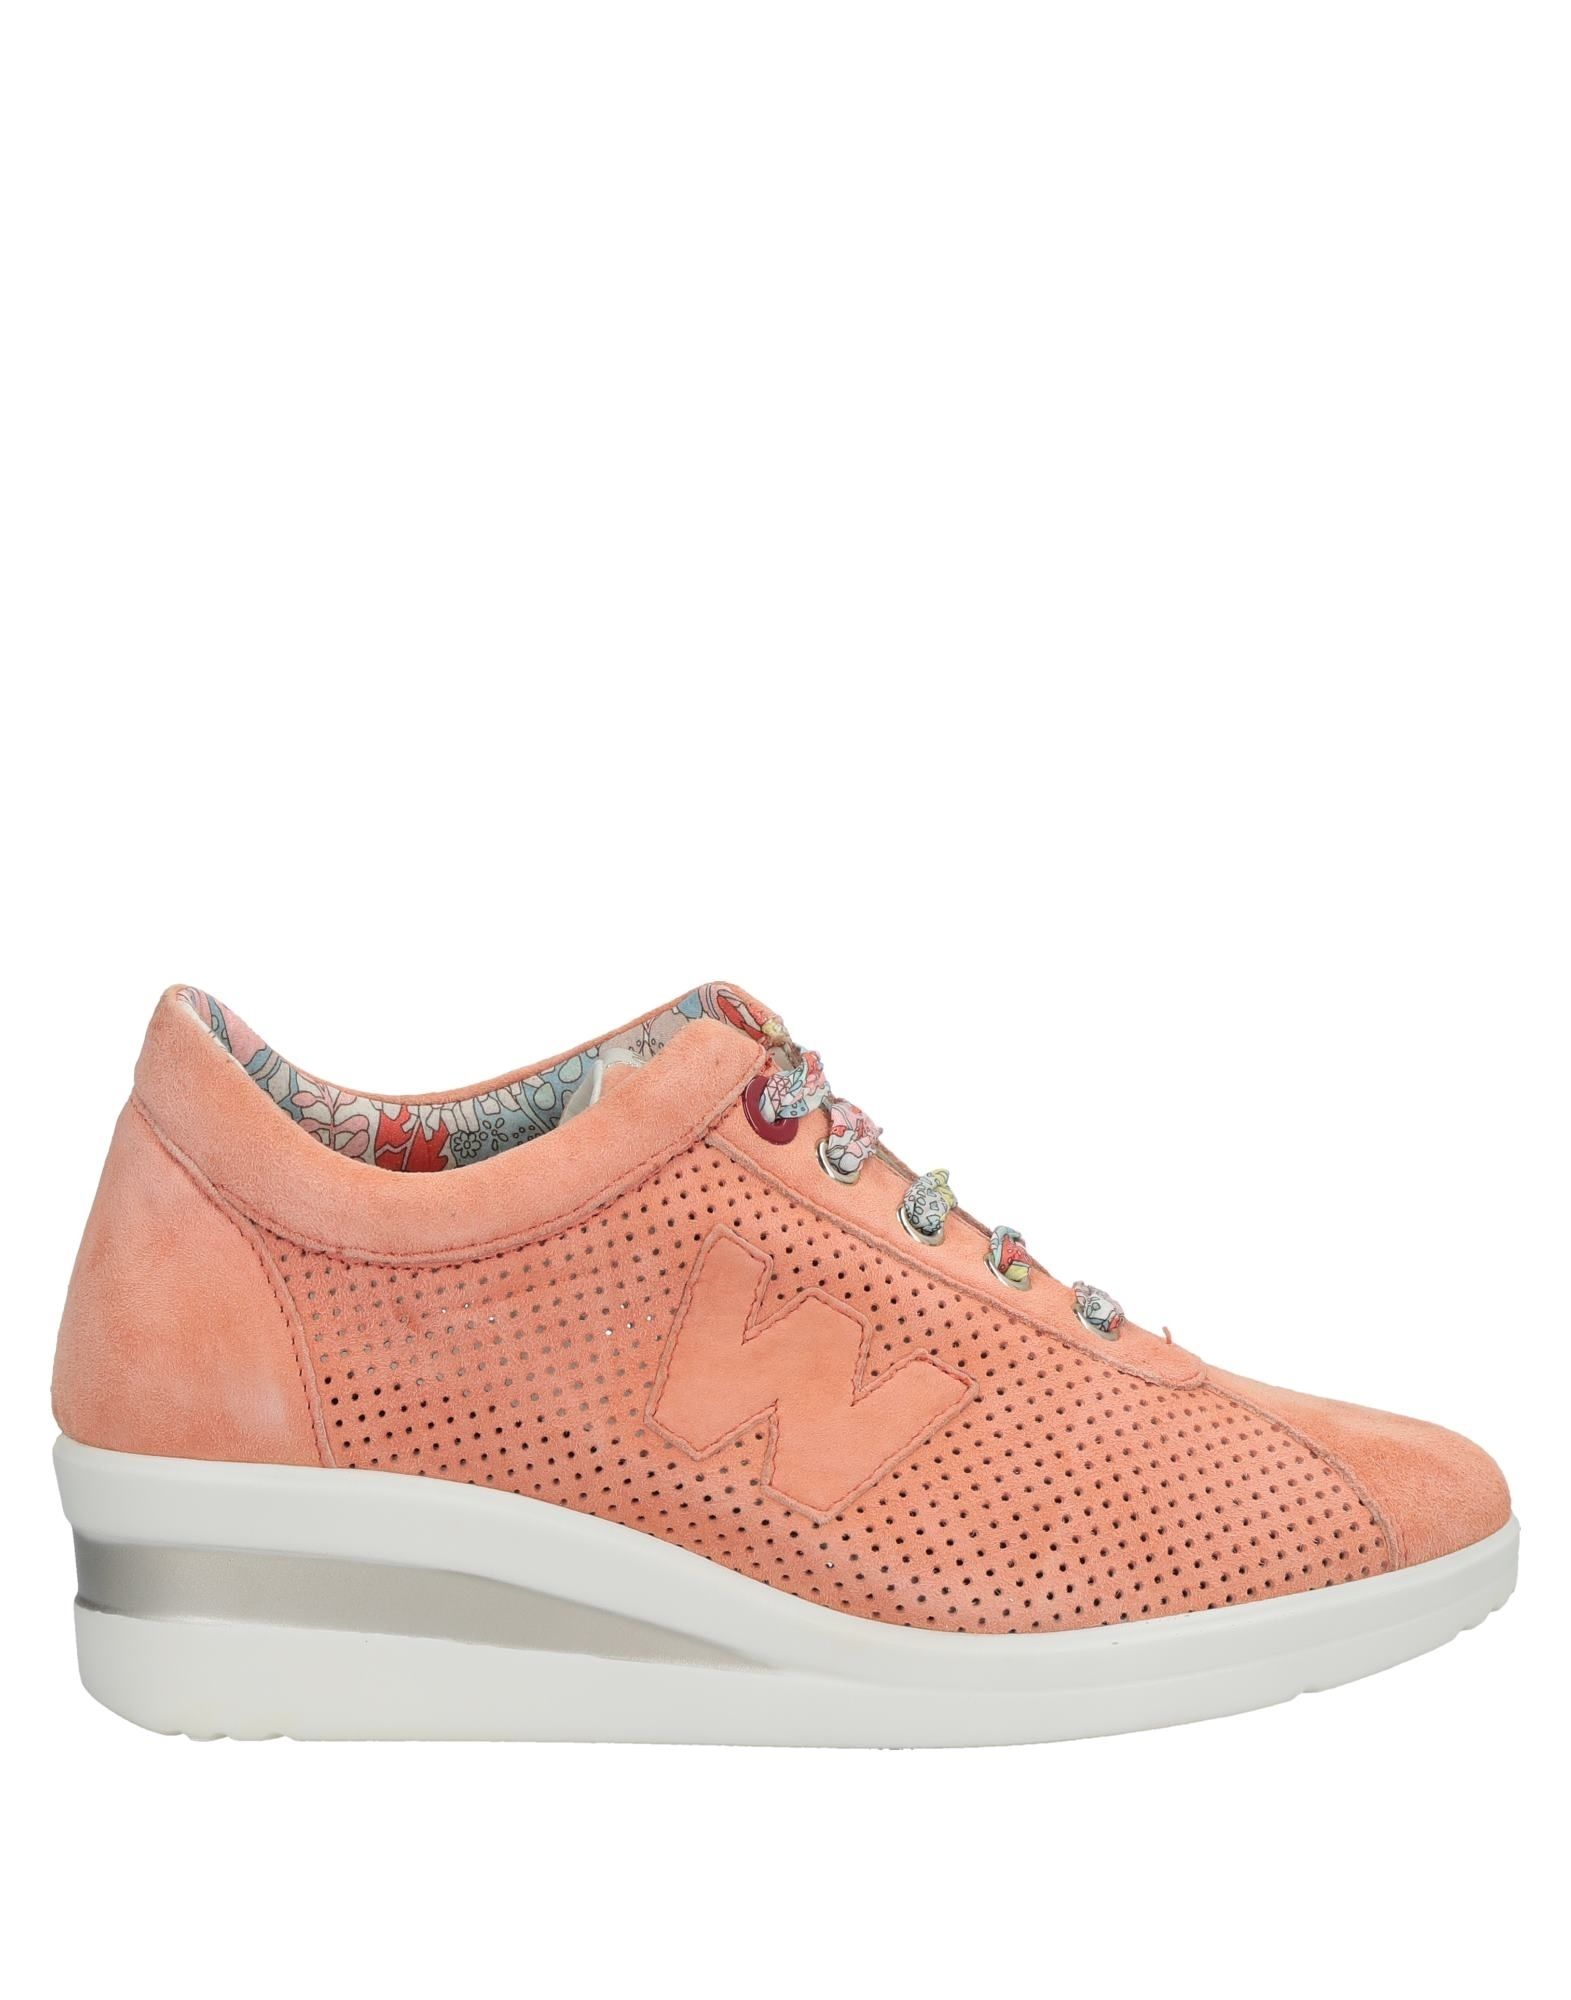 Sneakers - Walk By Melluso Donna - Sneakers 11532662JS d36002